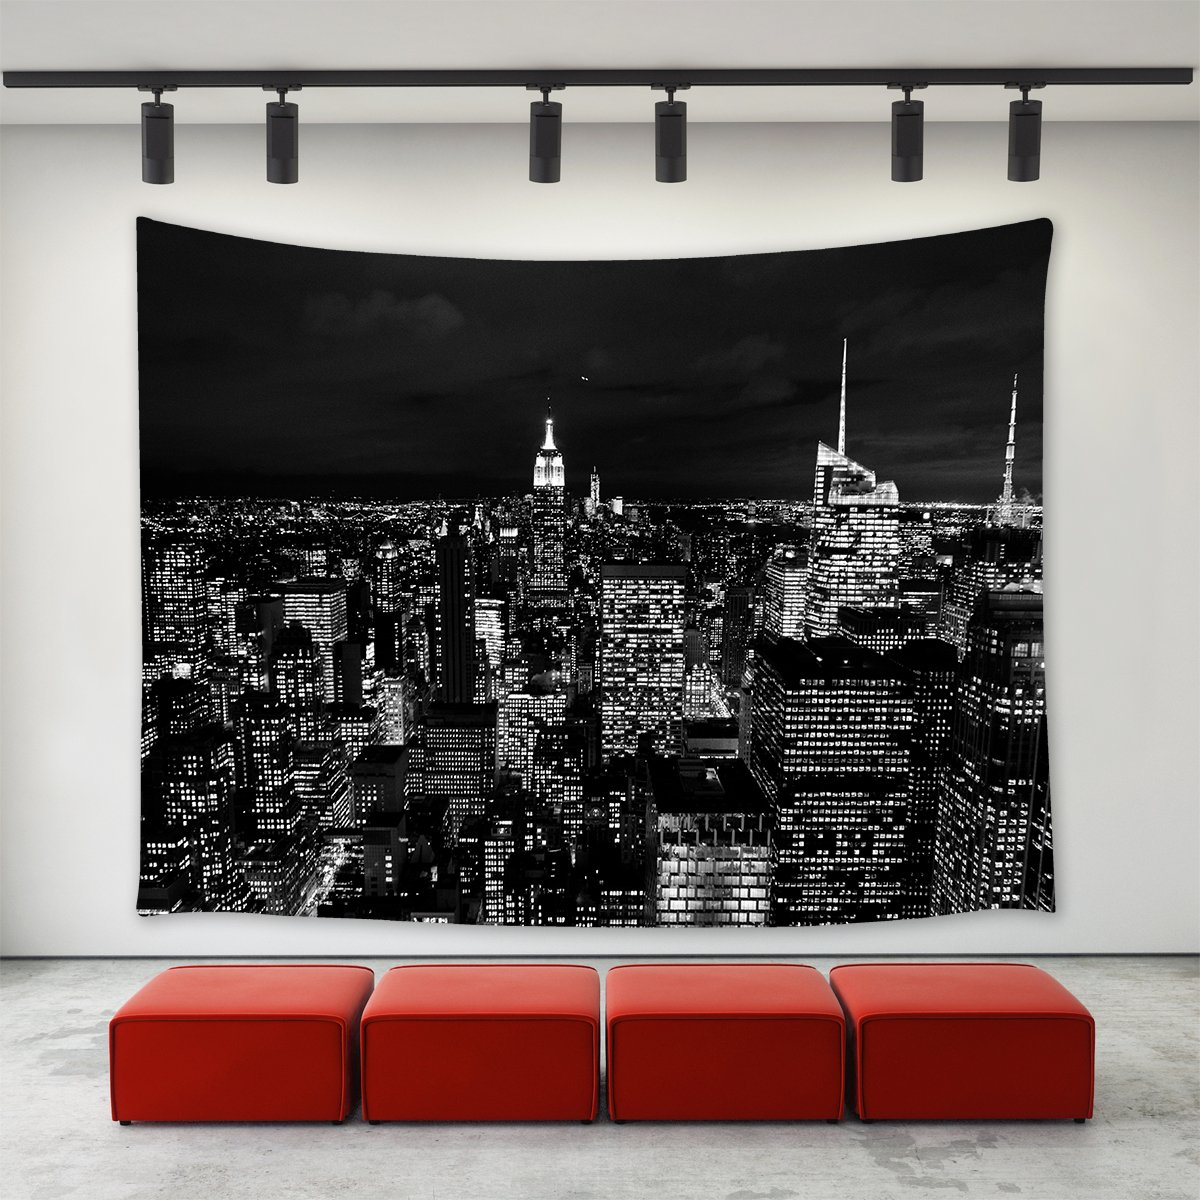 LBKT New York City Tapestry Wall Hanging Black and White New York City Landmark Skyline at Night Wall Art Home Decoration Wall Tapestries for Bedroom Living Room College Dorm Decor 90''x60''